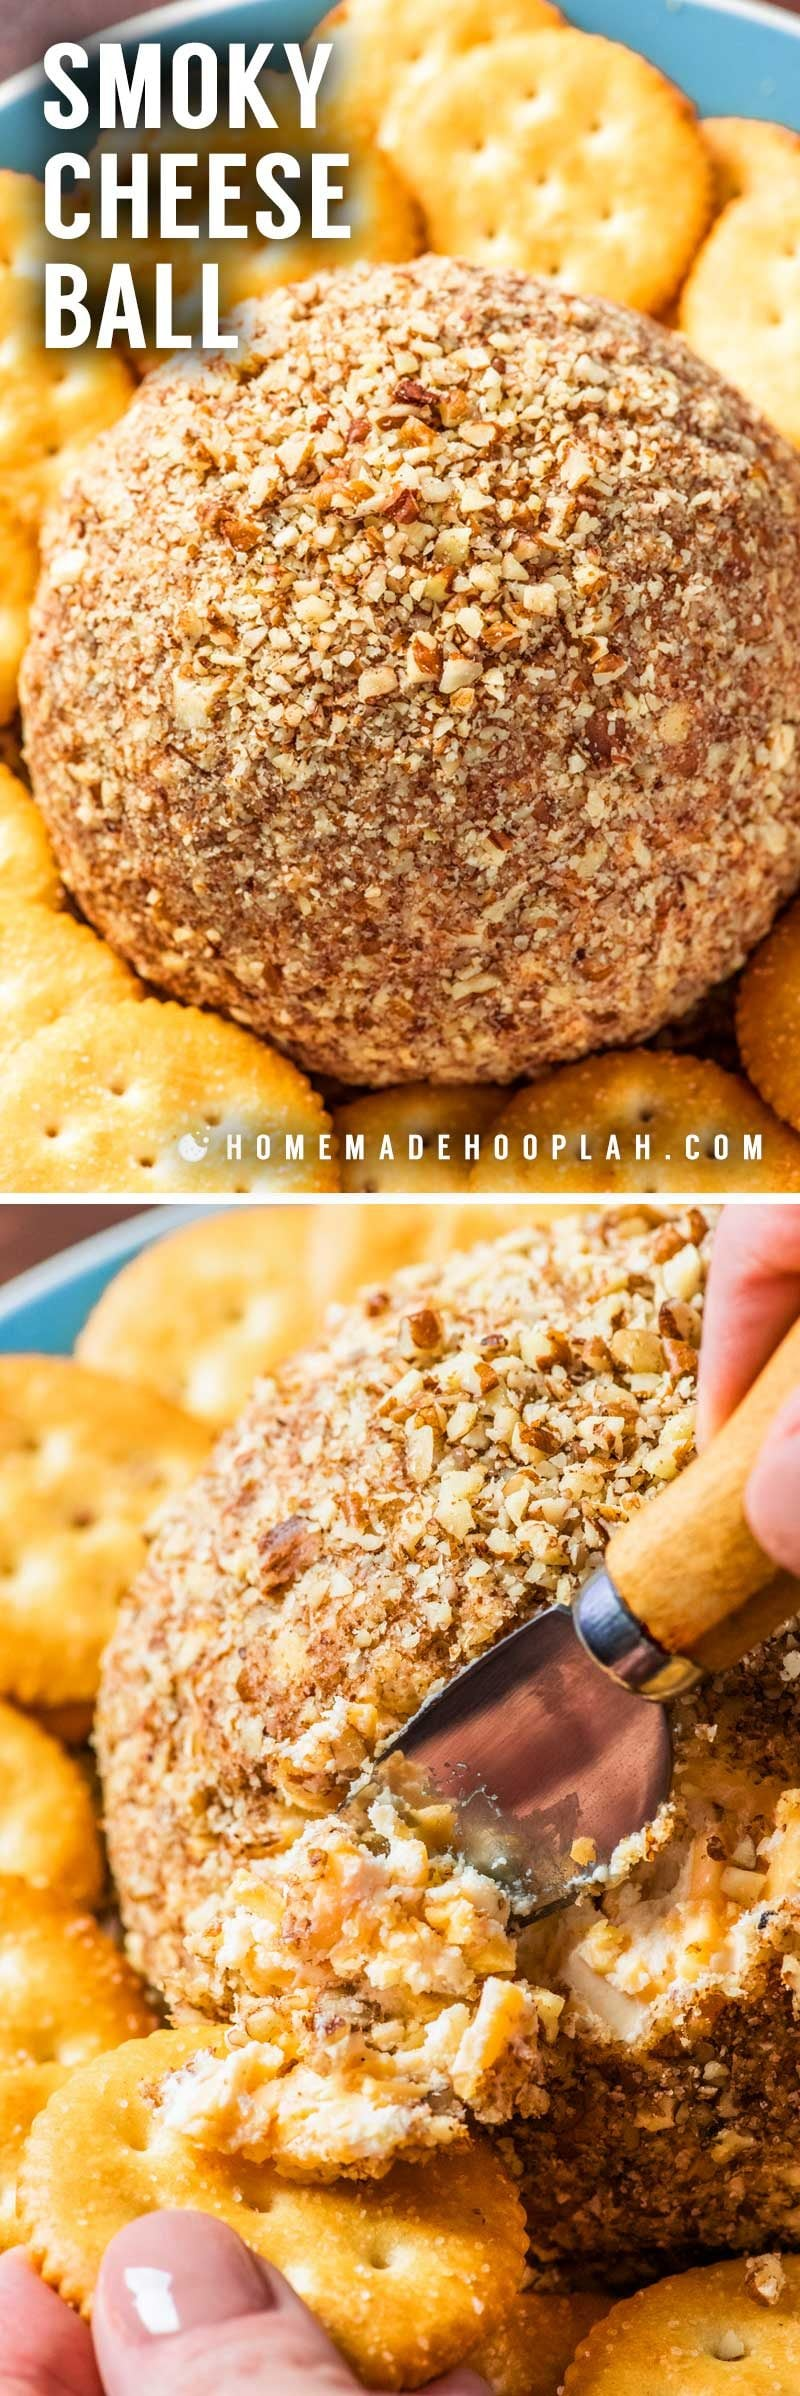 Cheese ball recipe with pecans and a smoky flavor.